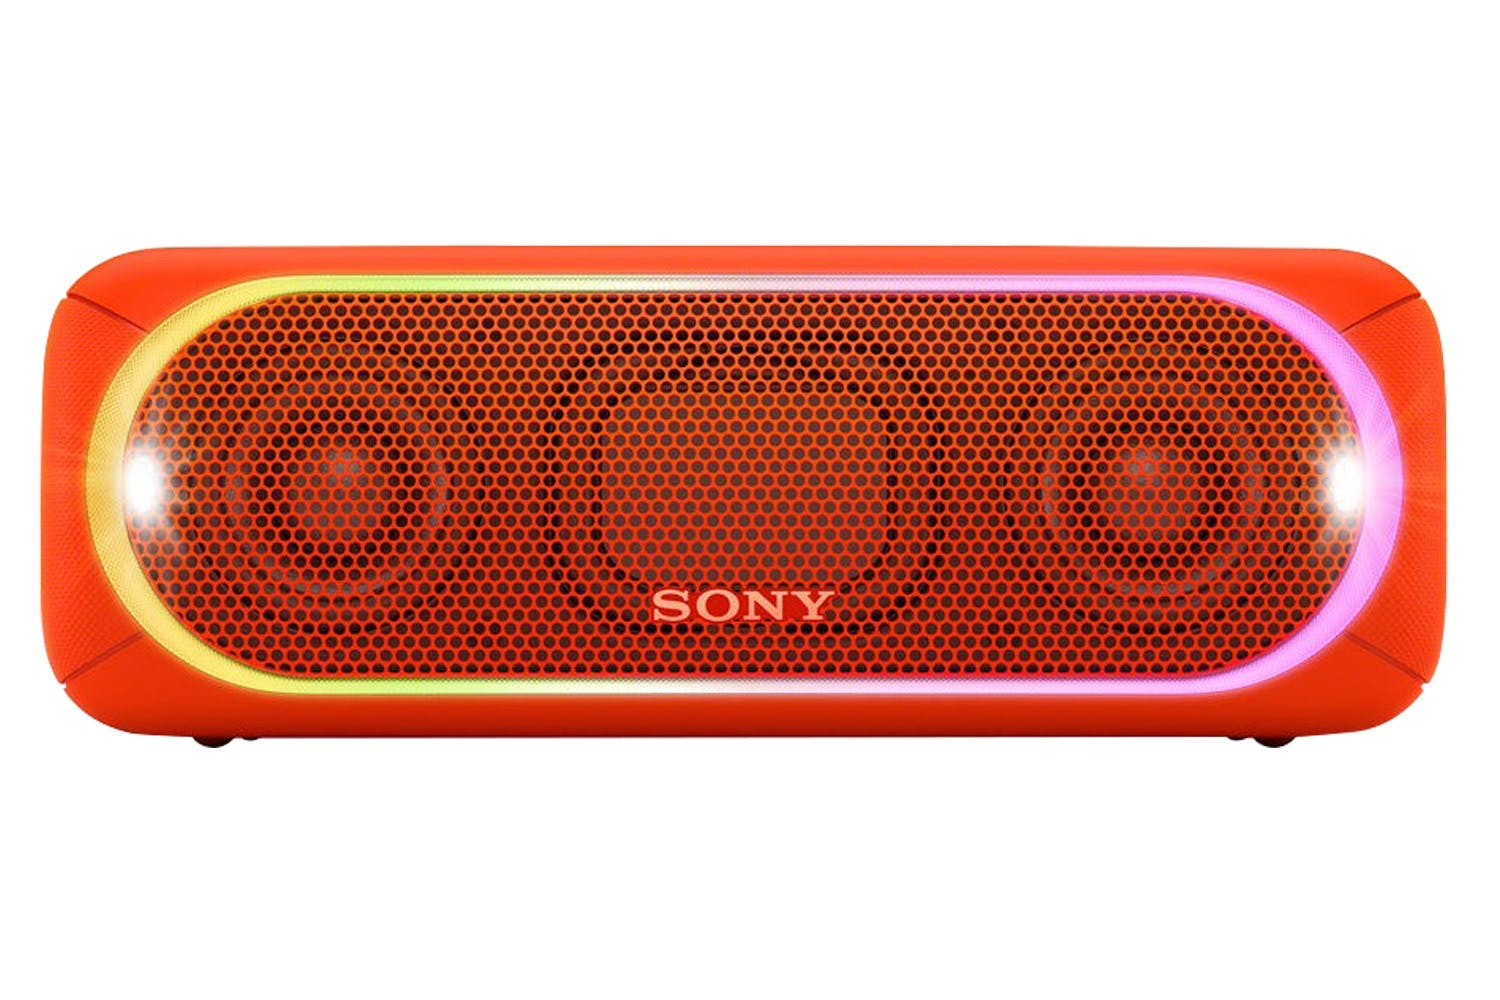 Sony Bluetooth Speaker | SRS-XB30 | Red